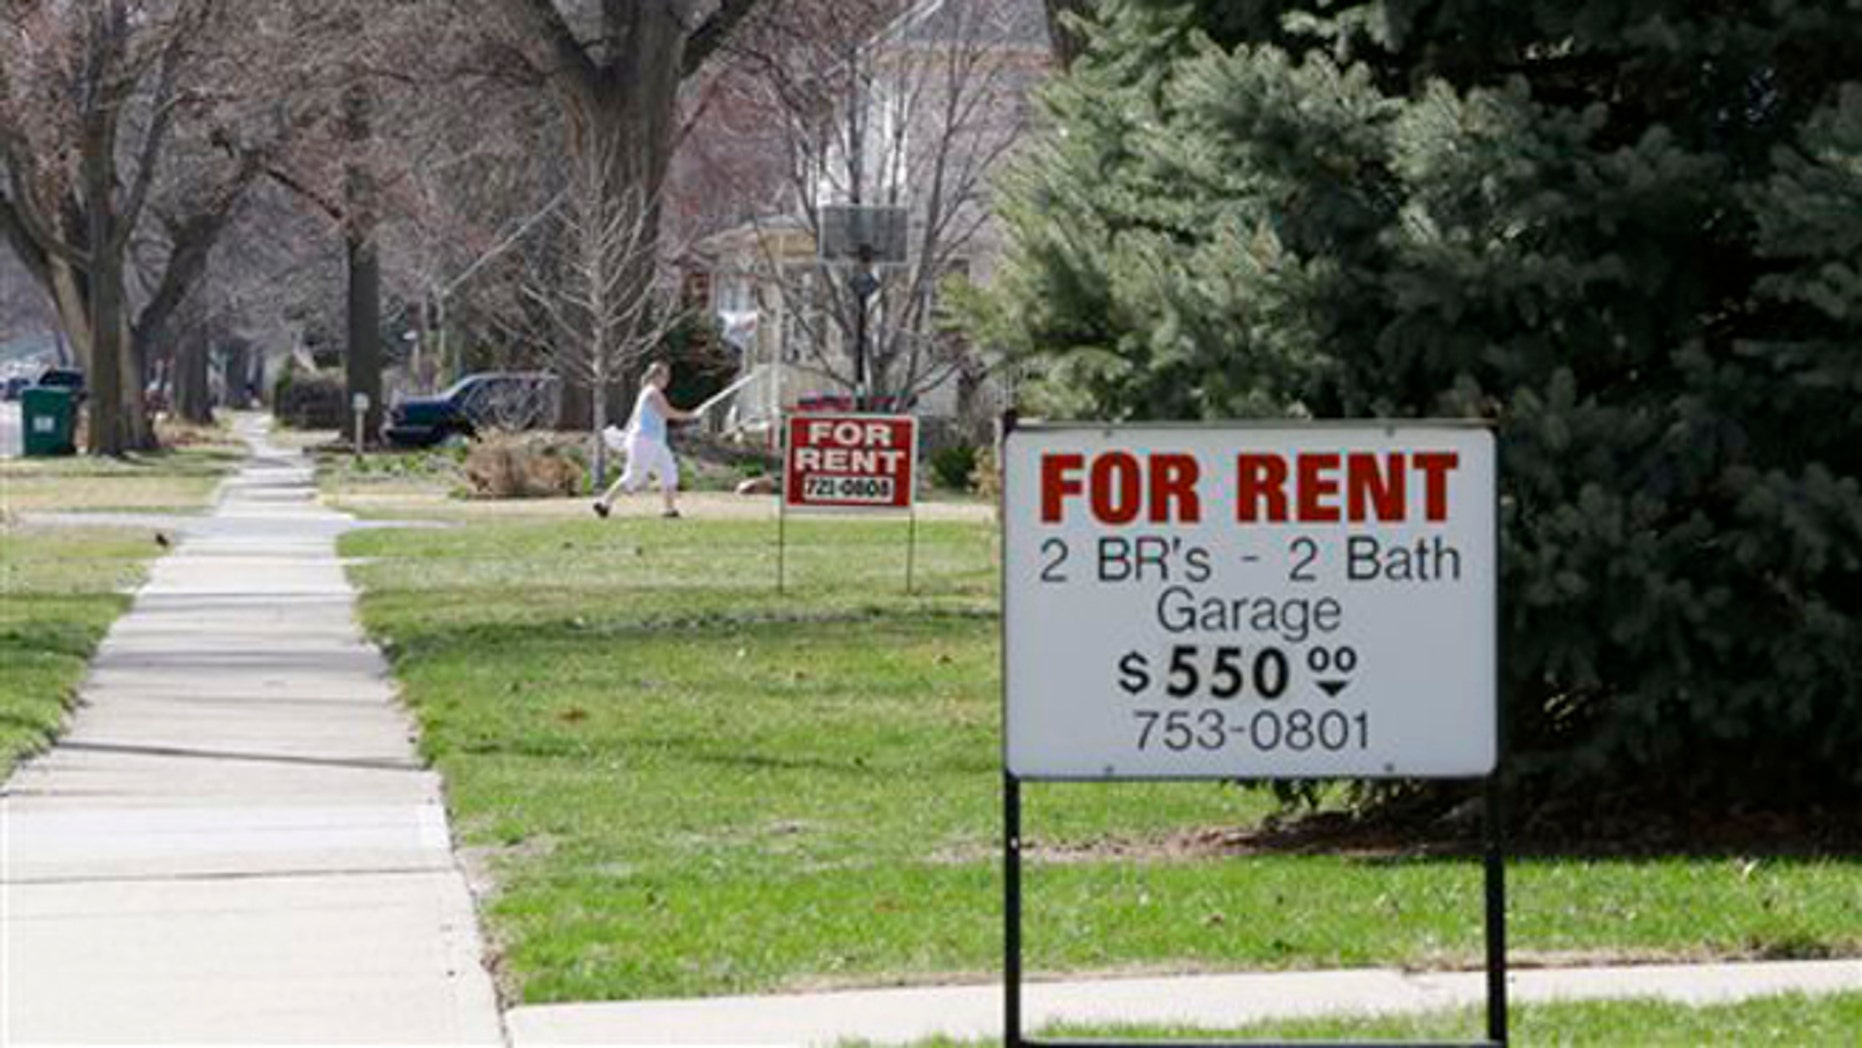 For Rent signs are seen in Fremont, Neb., Wednesday, April 9, 2014. Fremont police will begin issuing occupancy licenses to renters on Thursday, April 10, 2014, as part of the city's ordinance aimed at combating illegal immigration. (AP Photo/Nati Harnik)